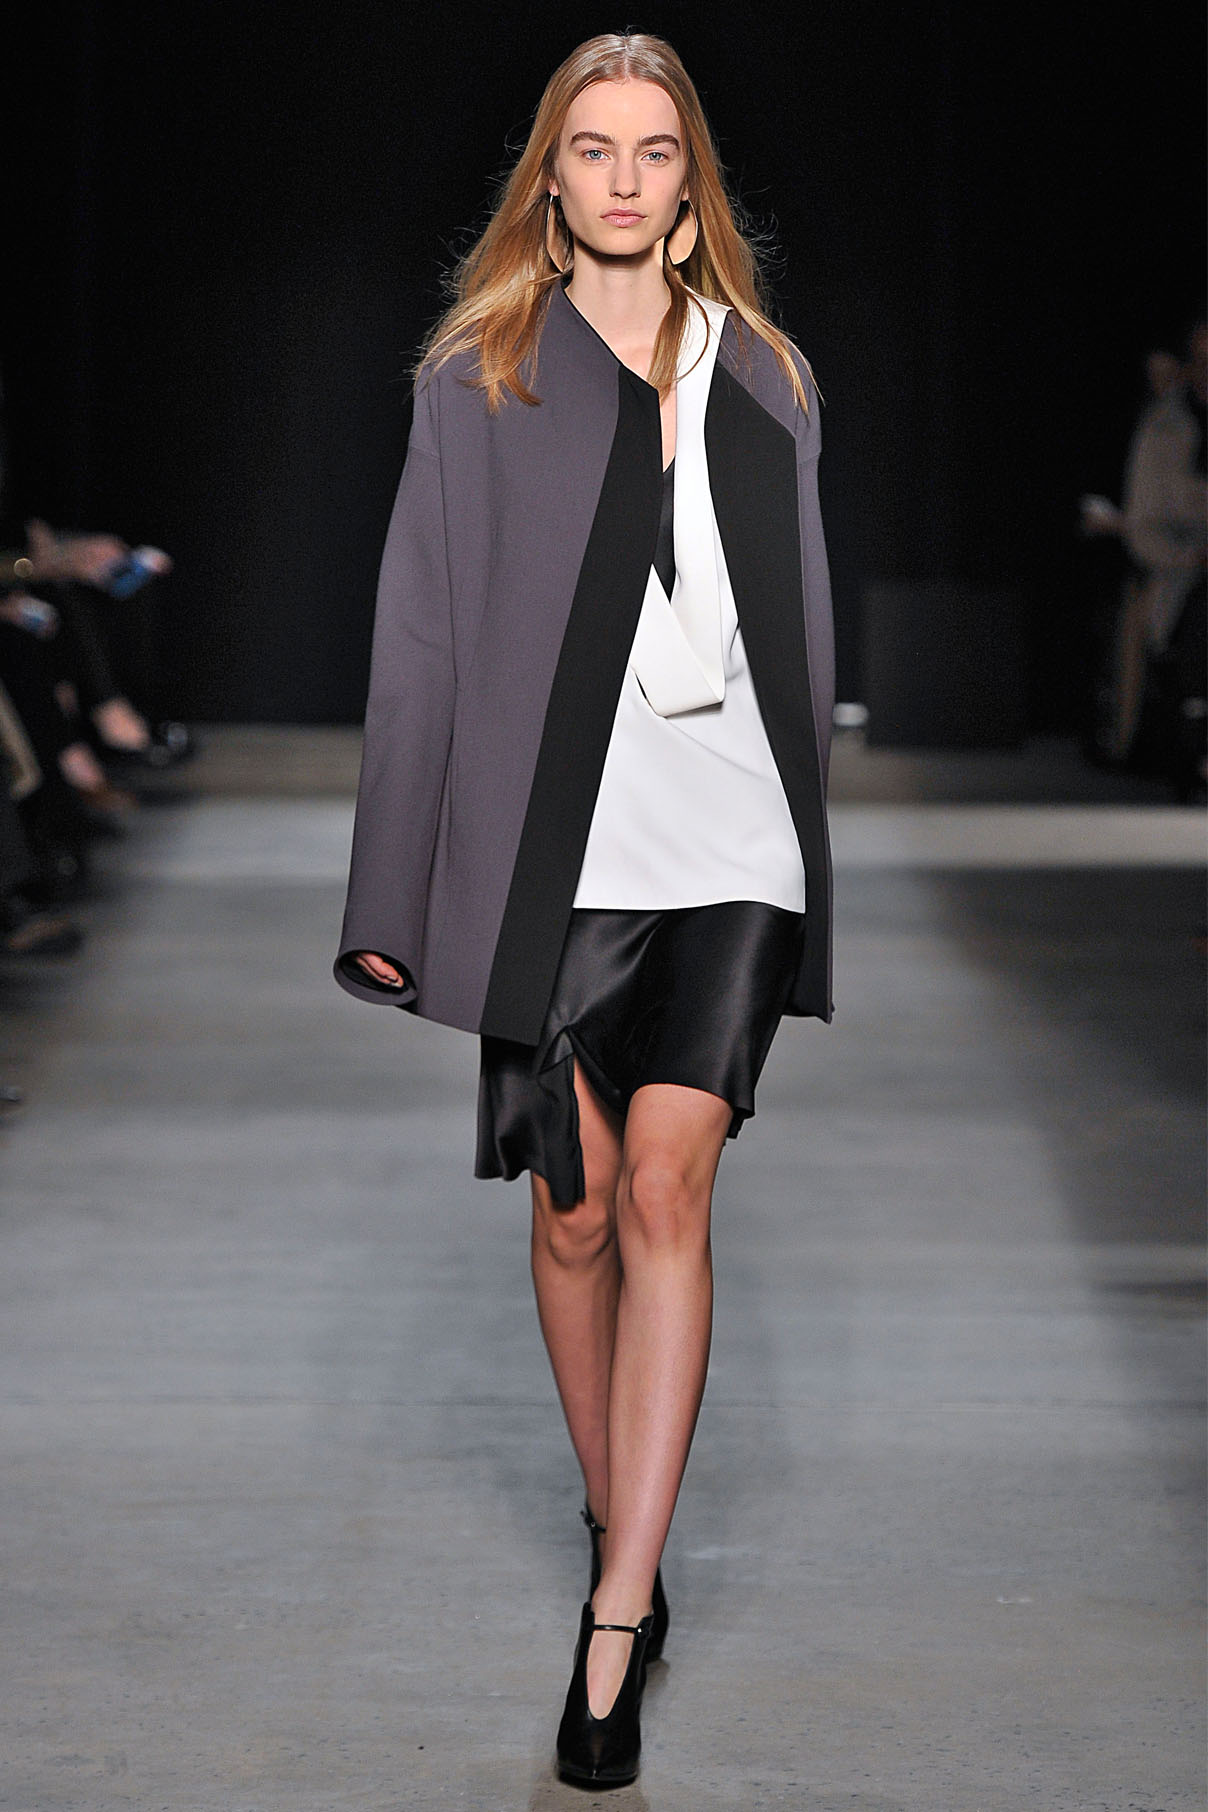 Look 15 Slate double wool crepe jacket over onyx bias silk dress with white crepe top.